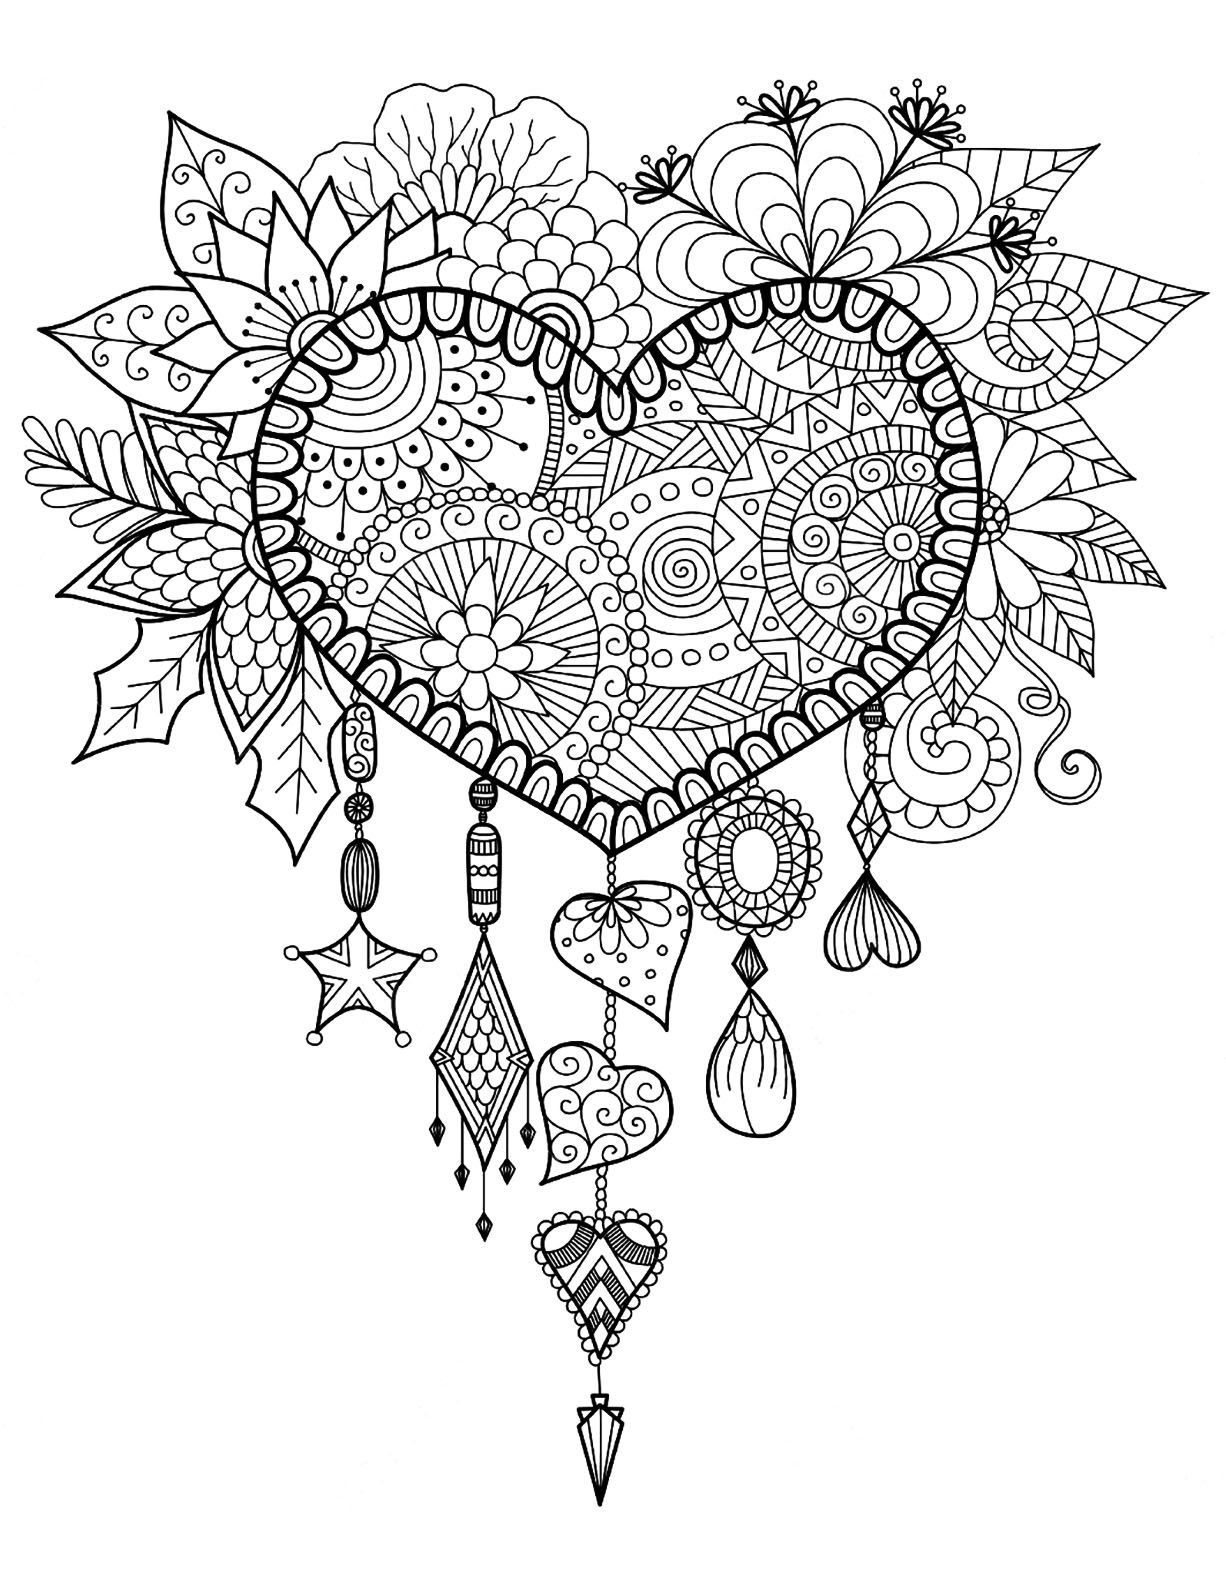 Heart Coloring Pages Just Color Coloring Pages For Adults Of